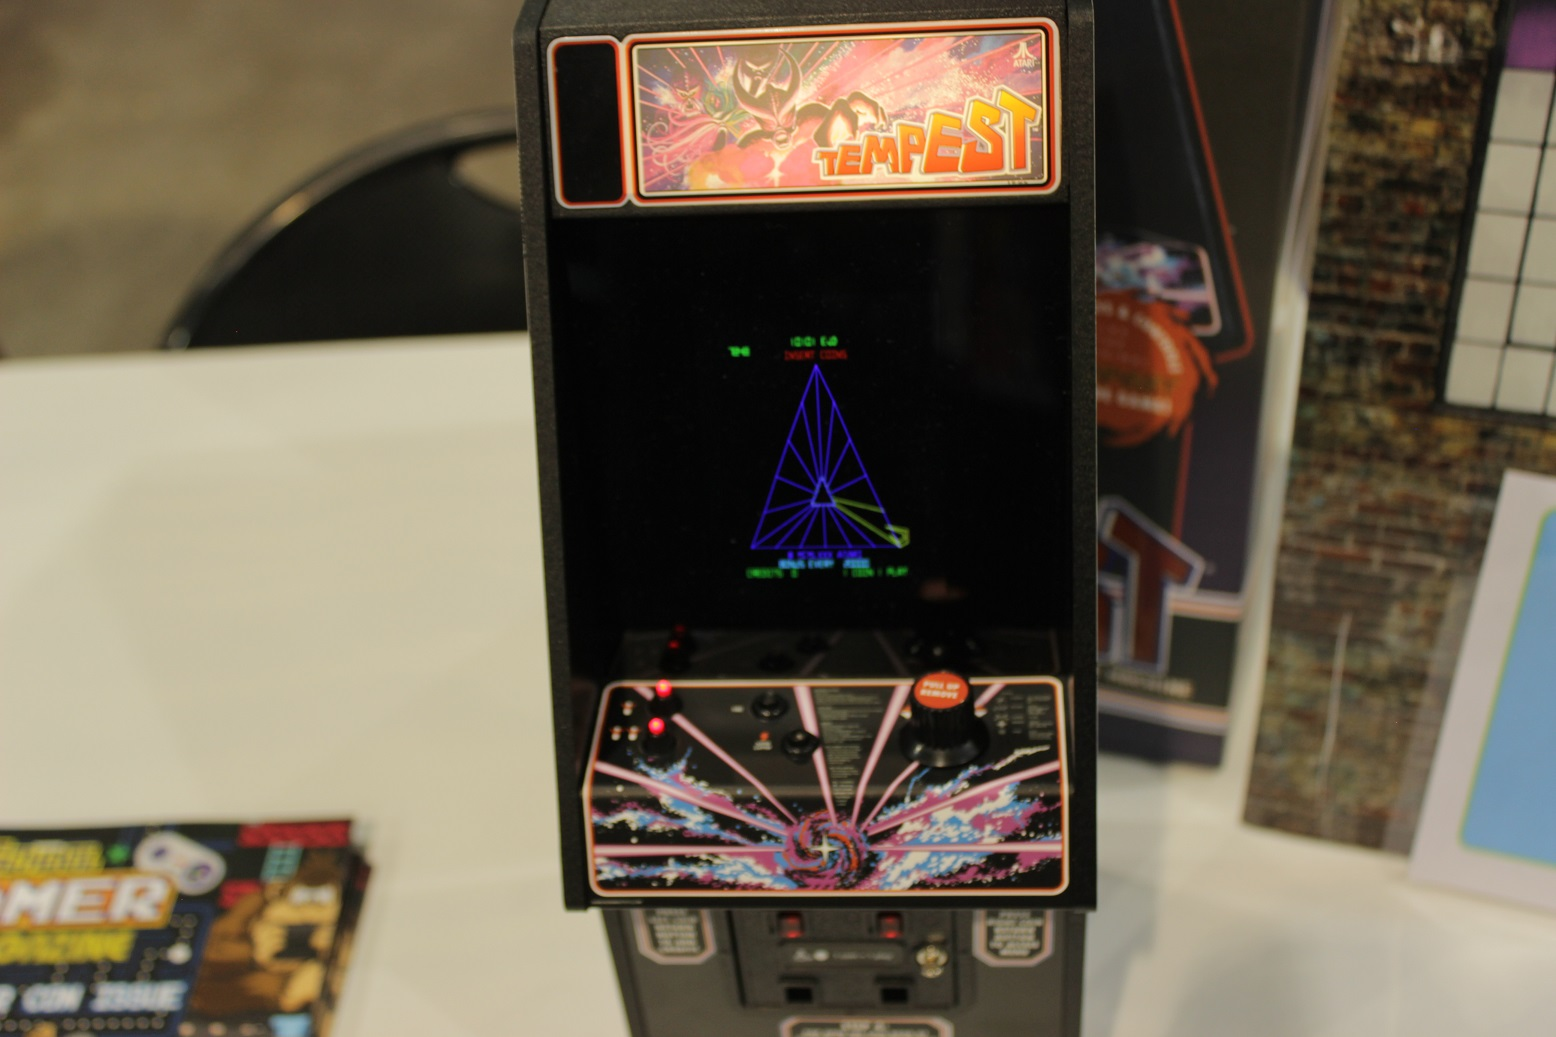 Good things in small packages: this mini Tempest arcade machine packed a punch. Photo by Justin Franco.